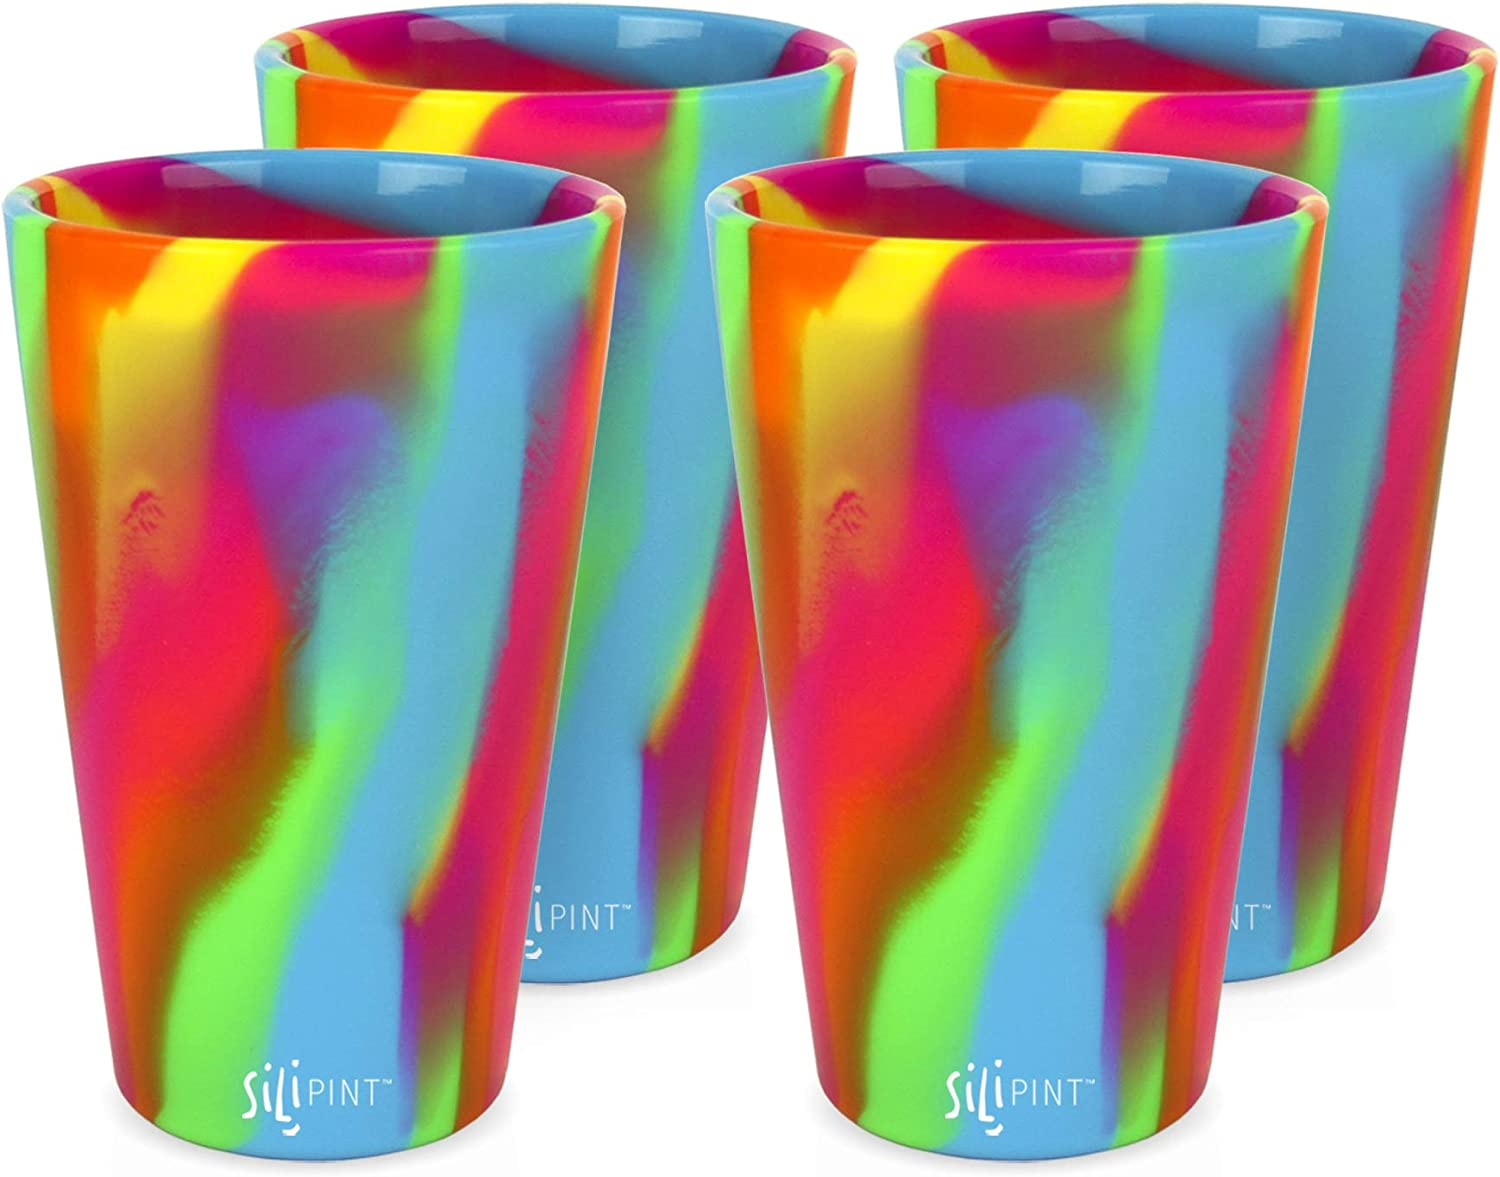 Silipint Silicone Pint Glass. wholesale Max 55% OFF Unbreakable Durable Reusable an